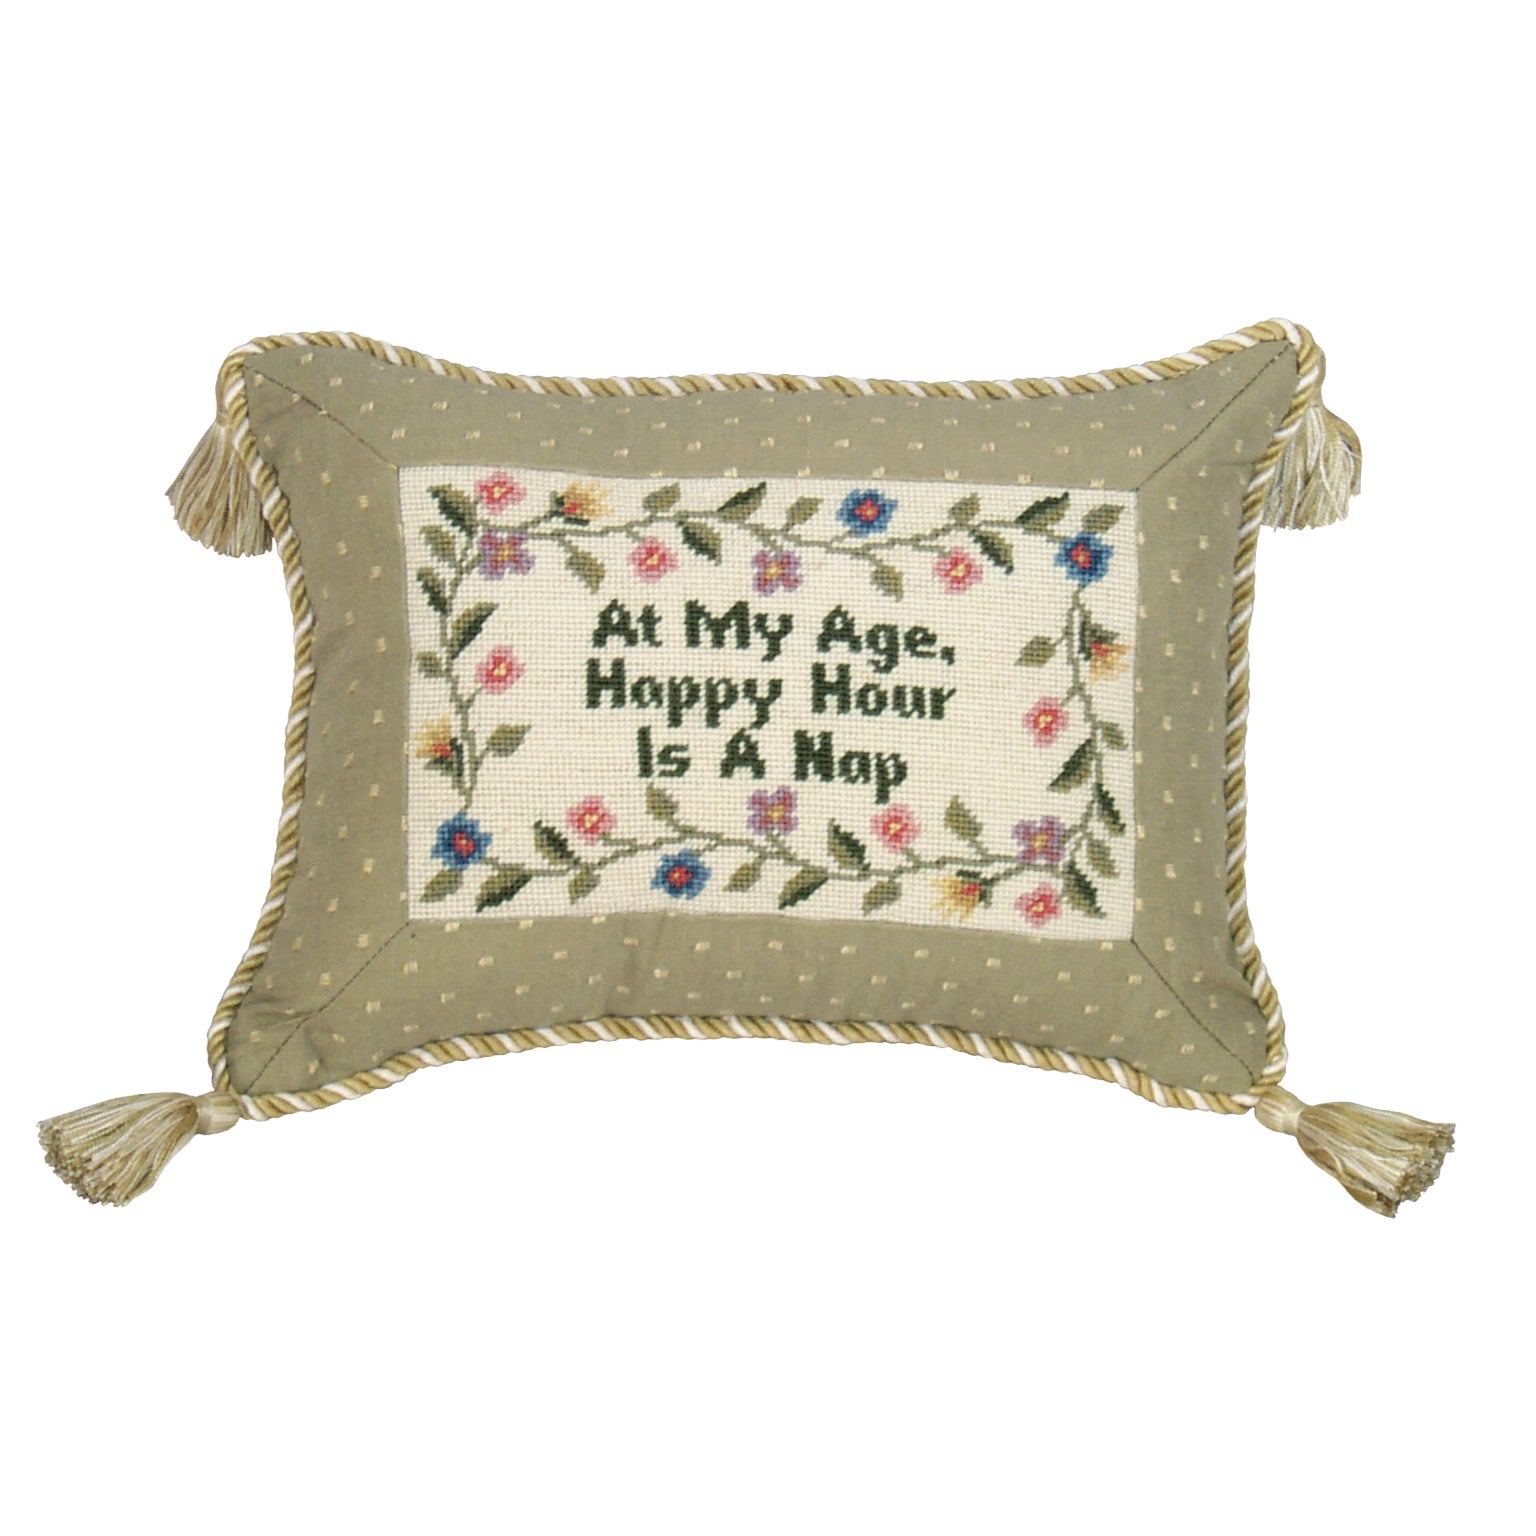 'At My Age...' Petit-point Pillow